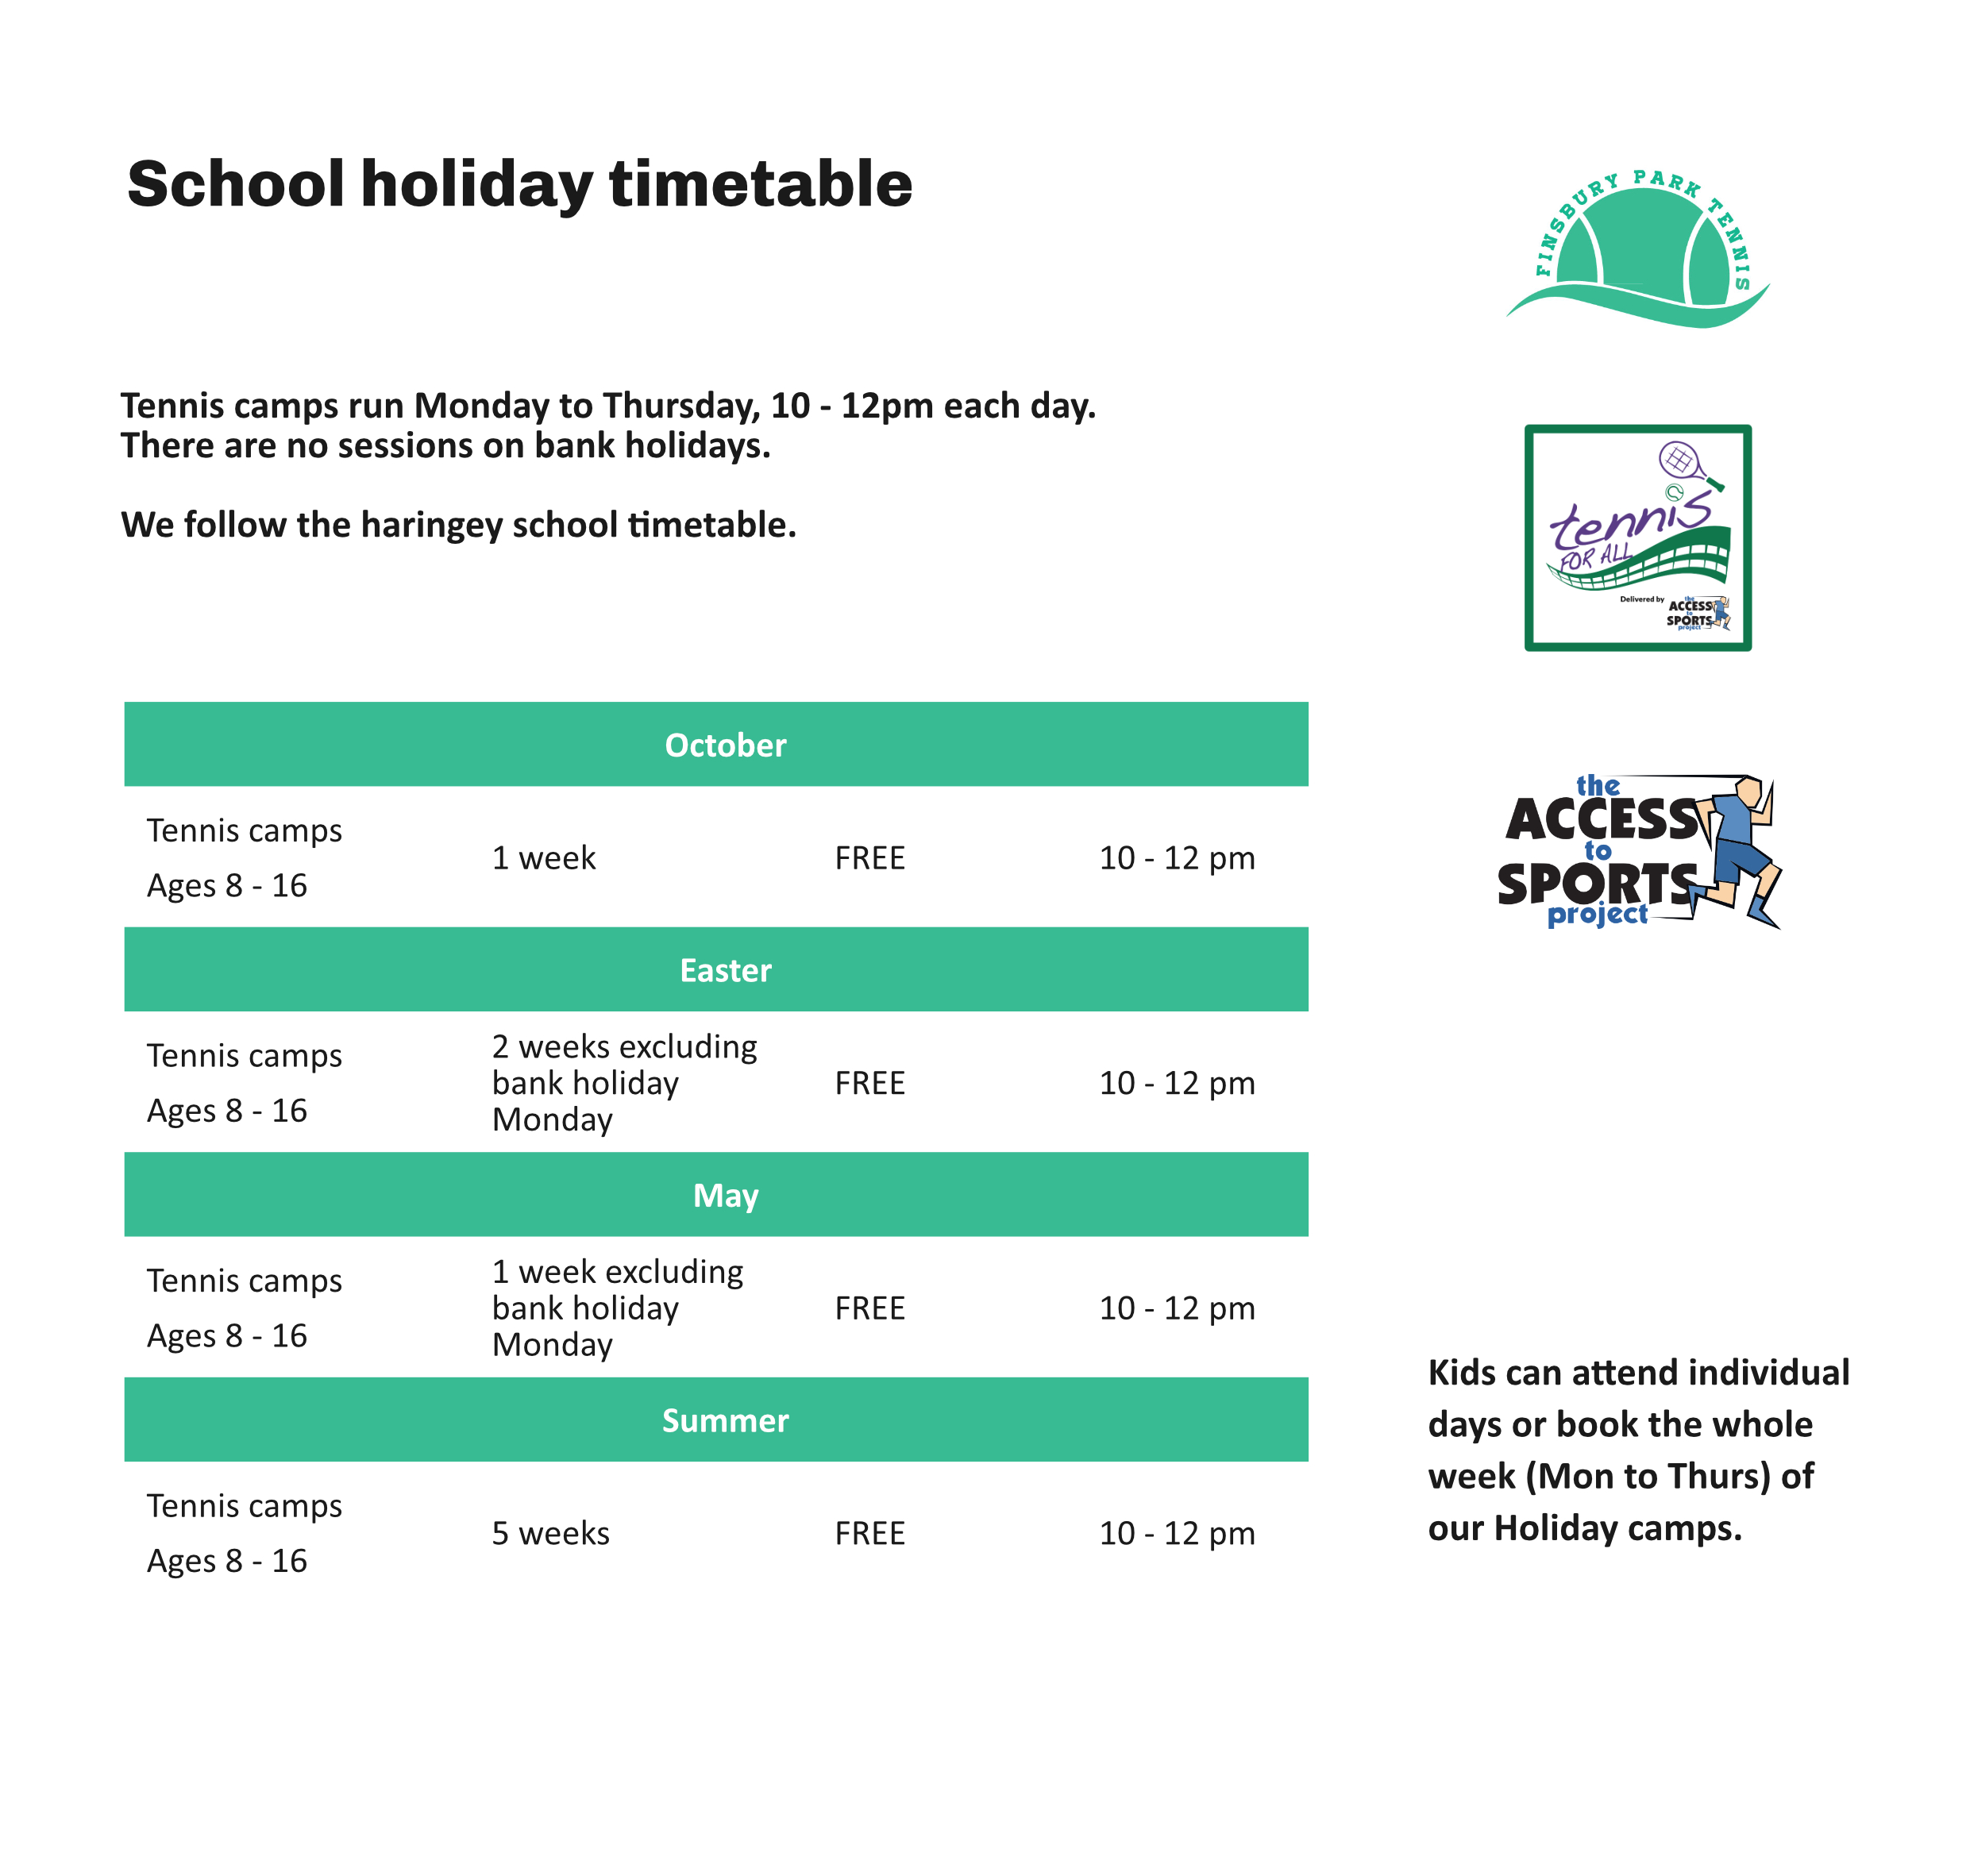 FPT holiday timetable-a